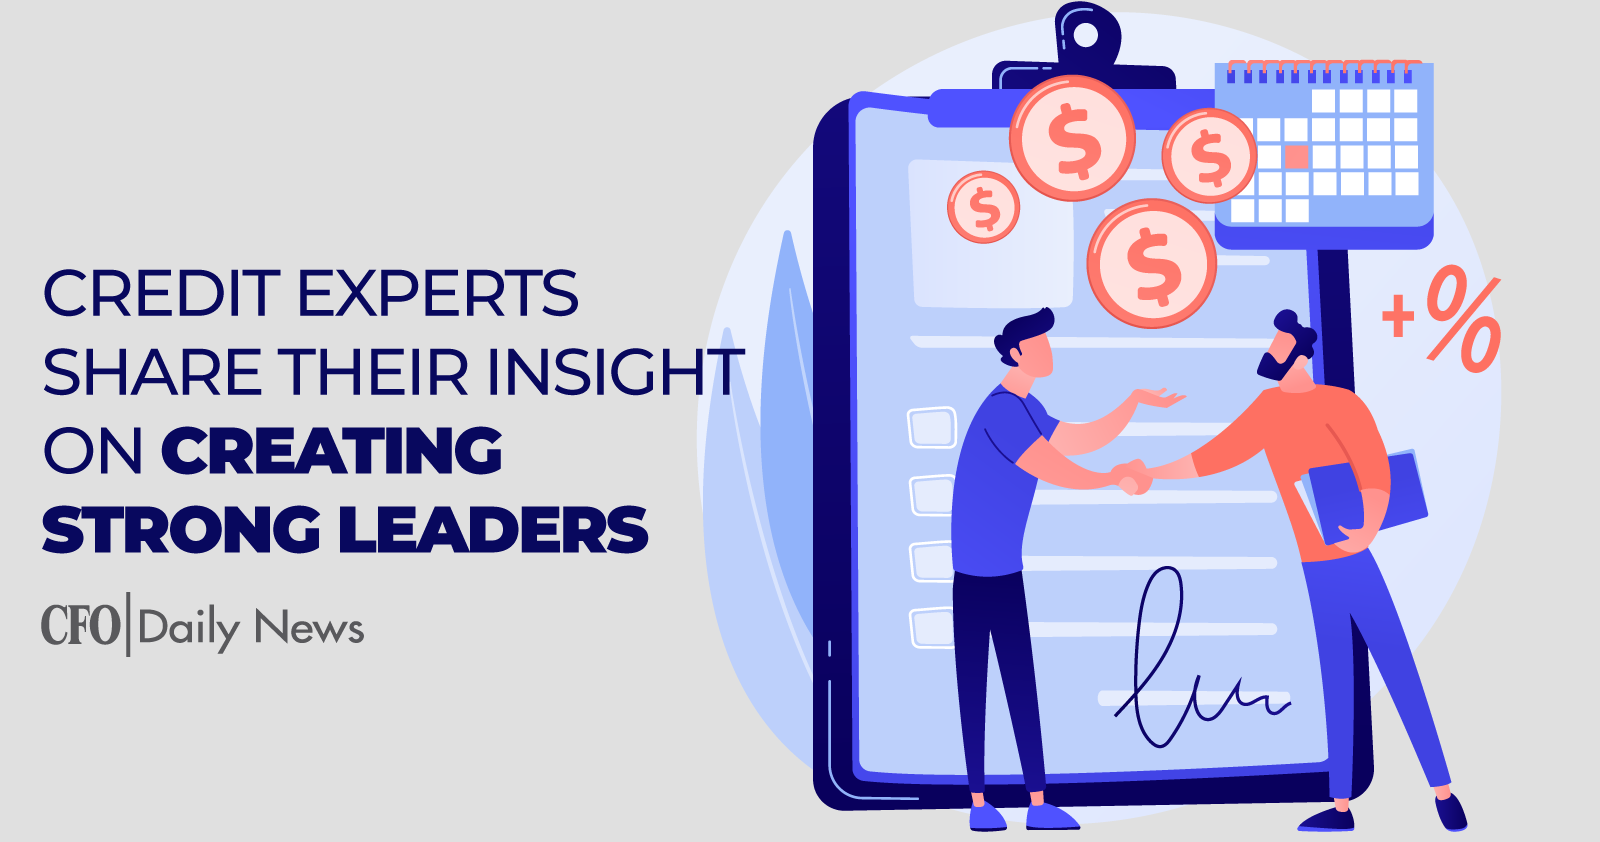 Credit Experts ShareT heirI nsight On Creating Strong Leaders